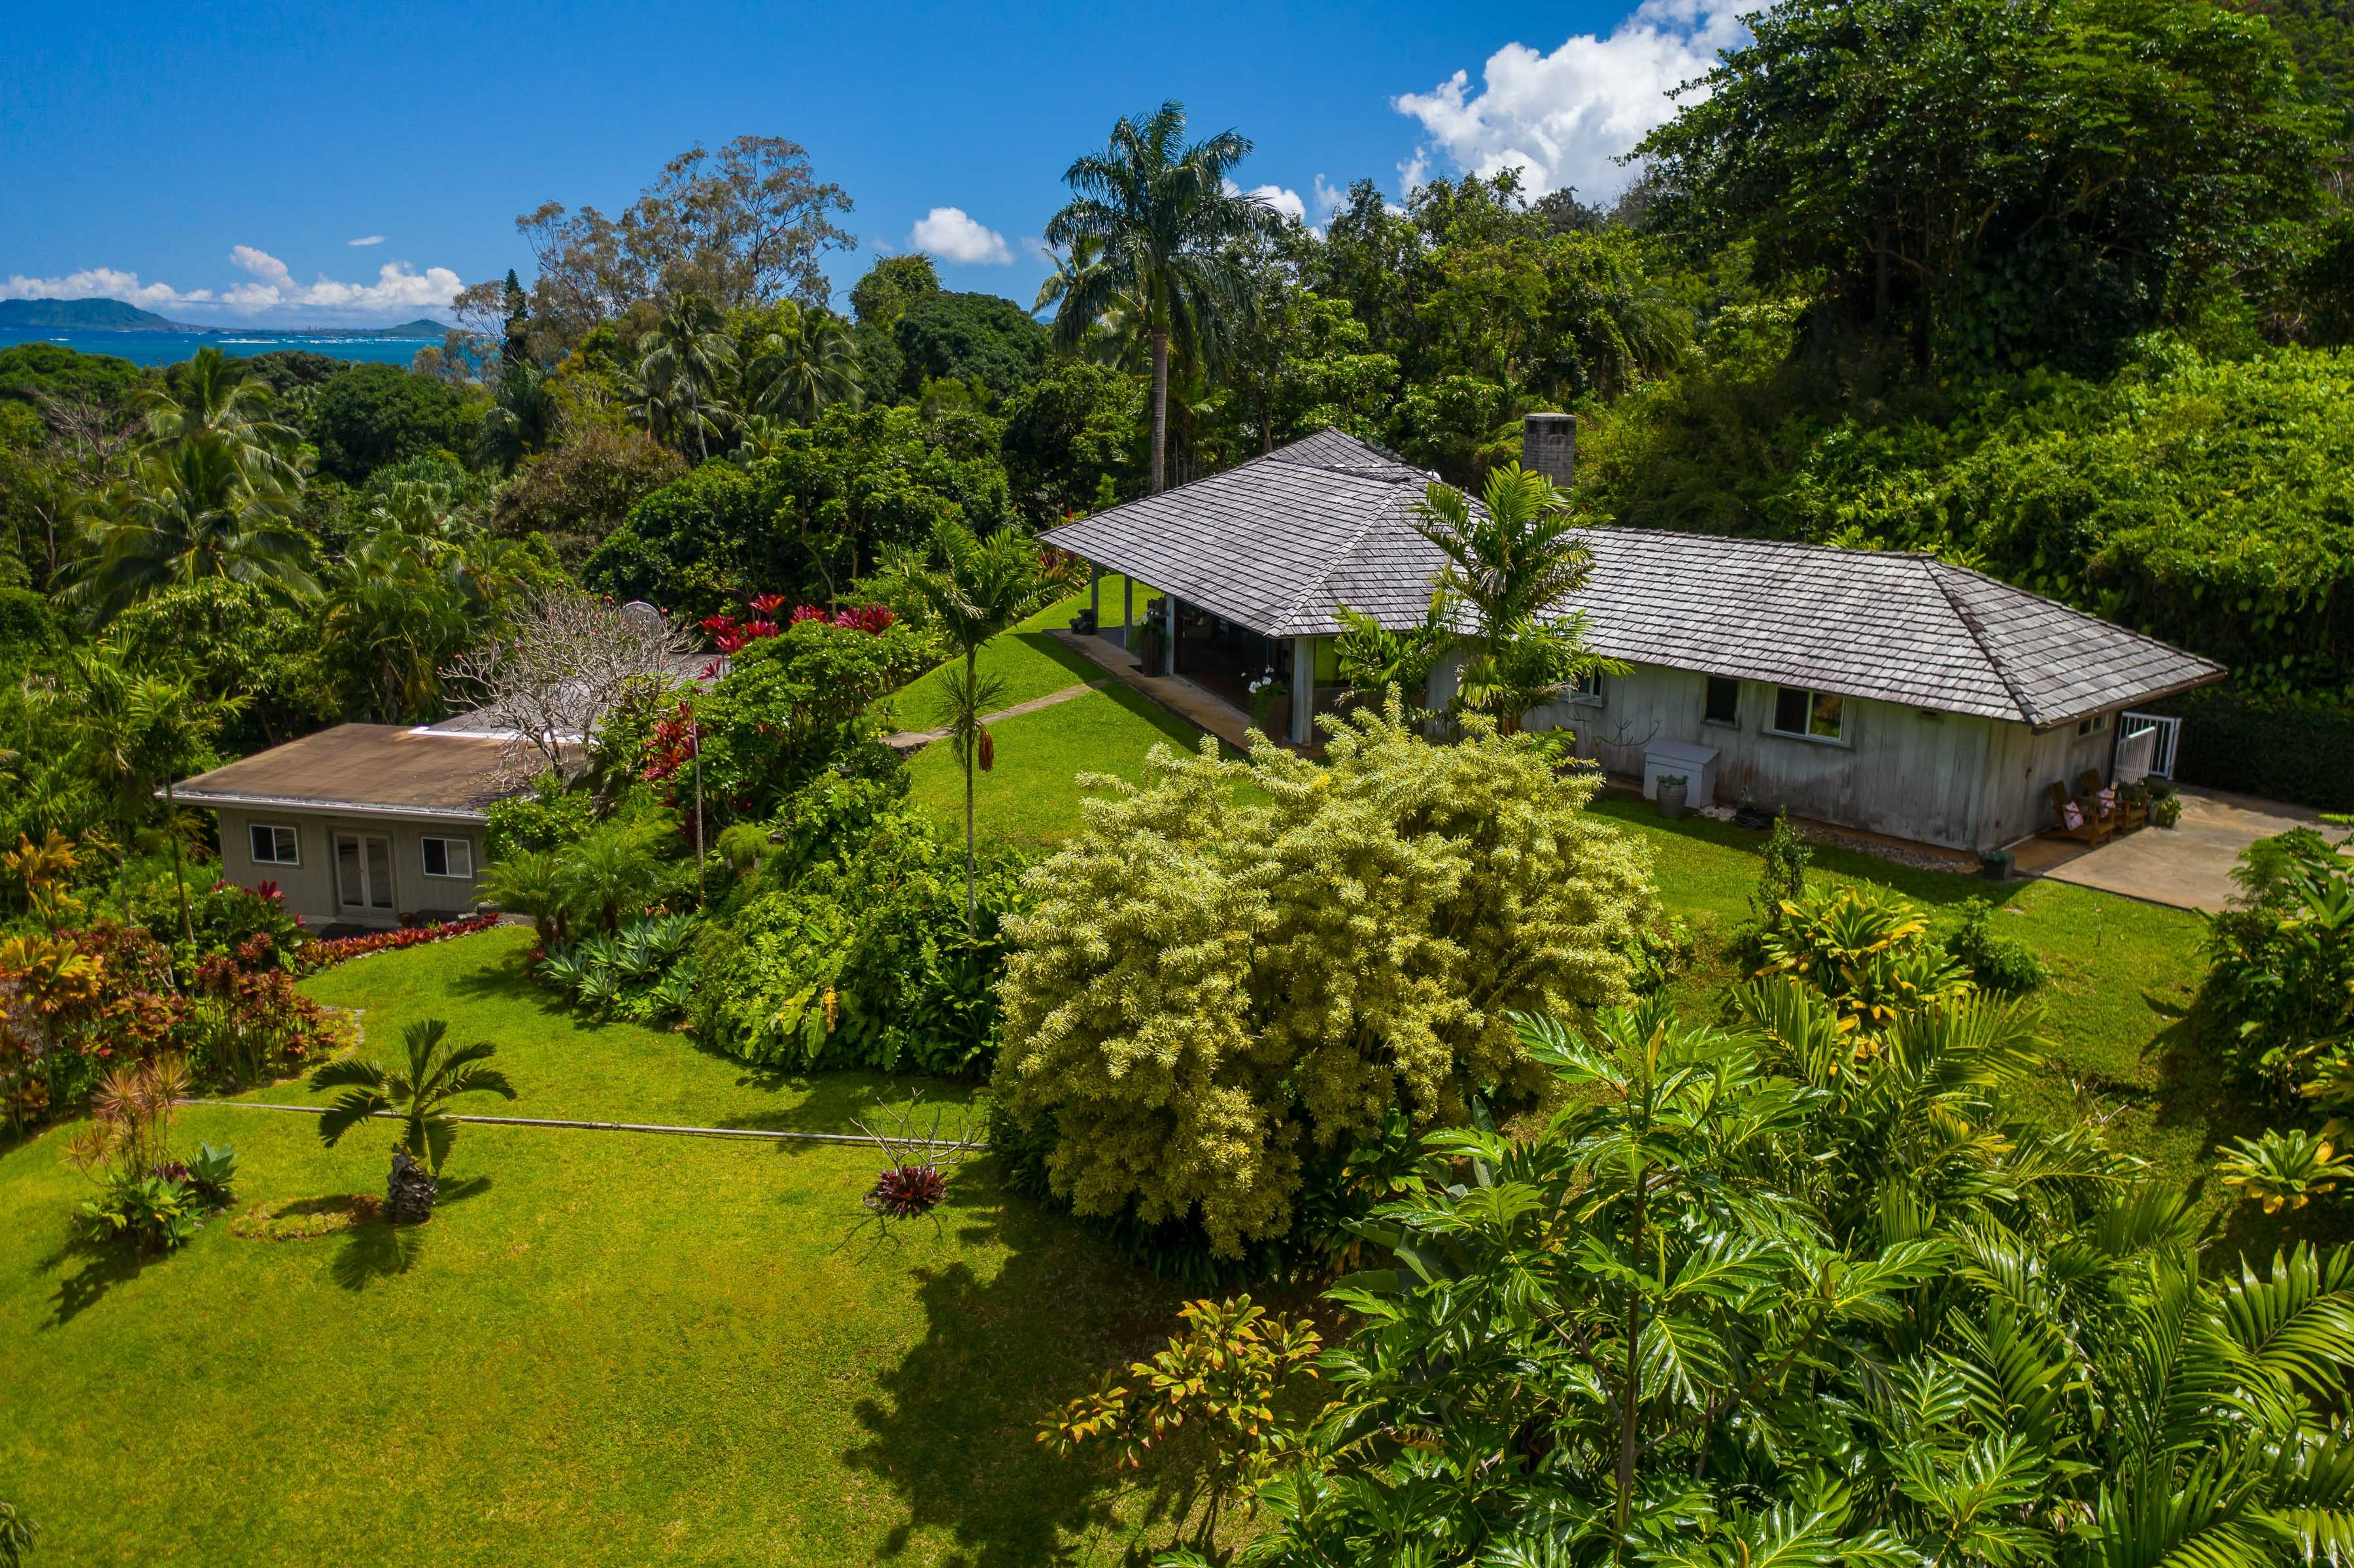 49-074 kamehameha highway c a luxury other for sale in kaneohe, hawaii property id 202003102 christie s international real estate